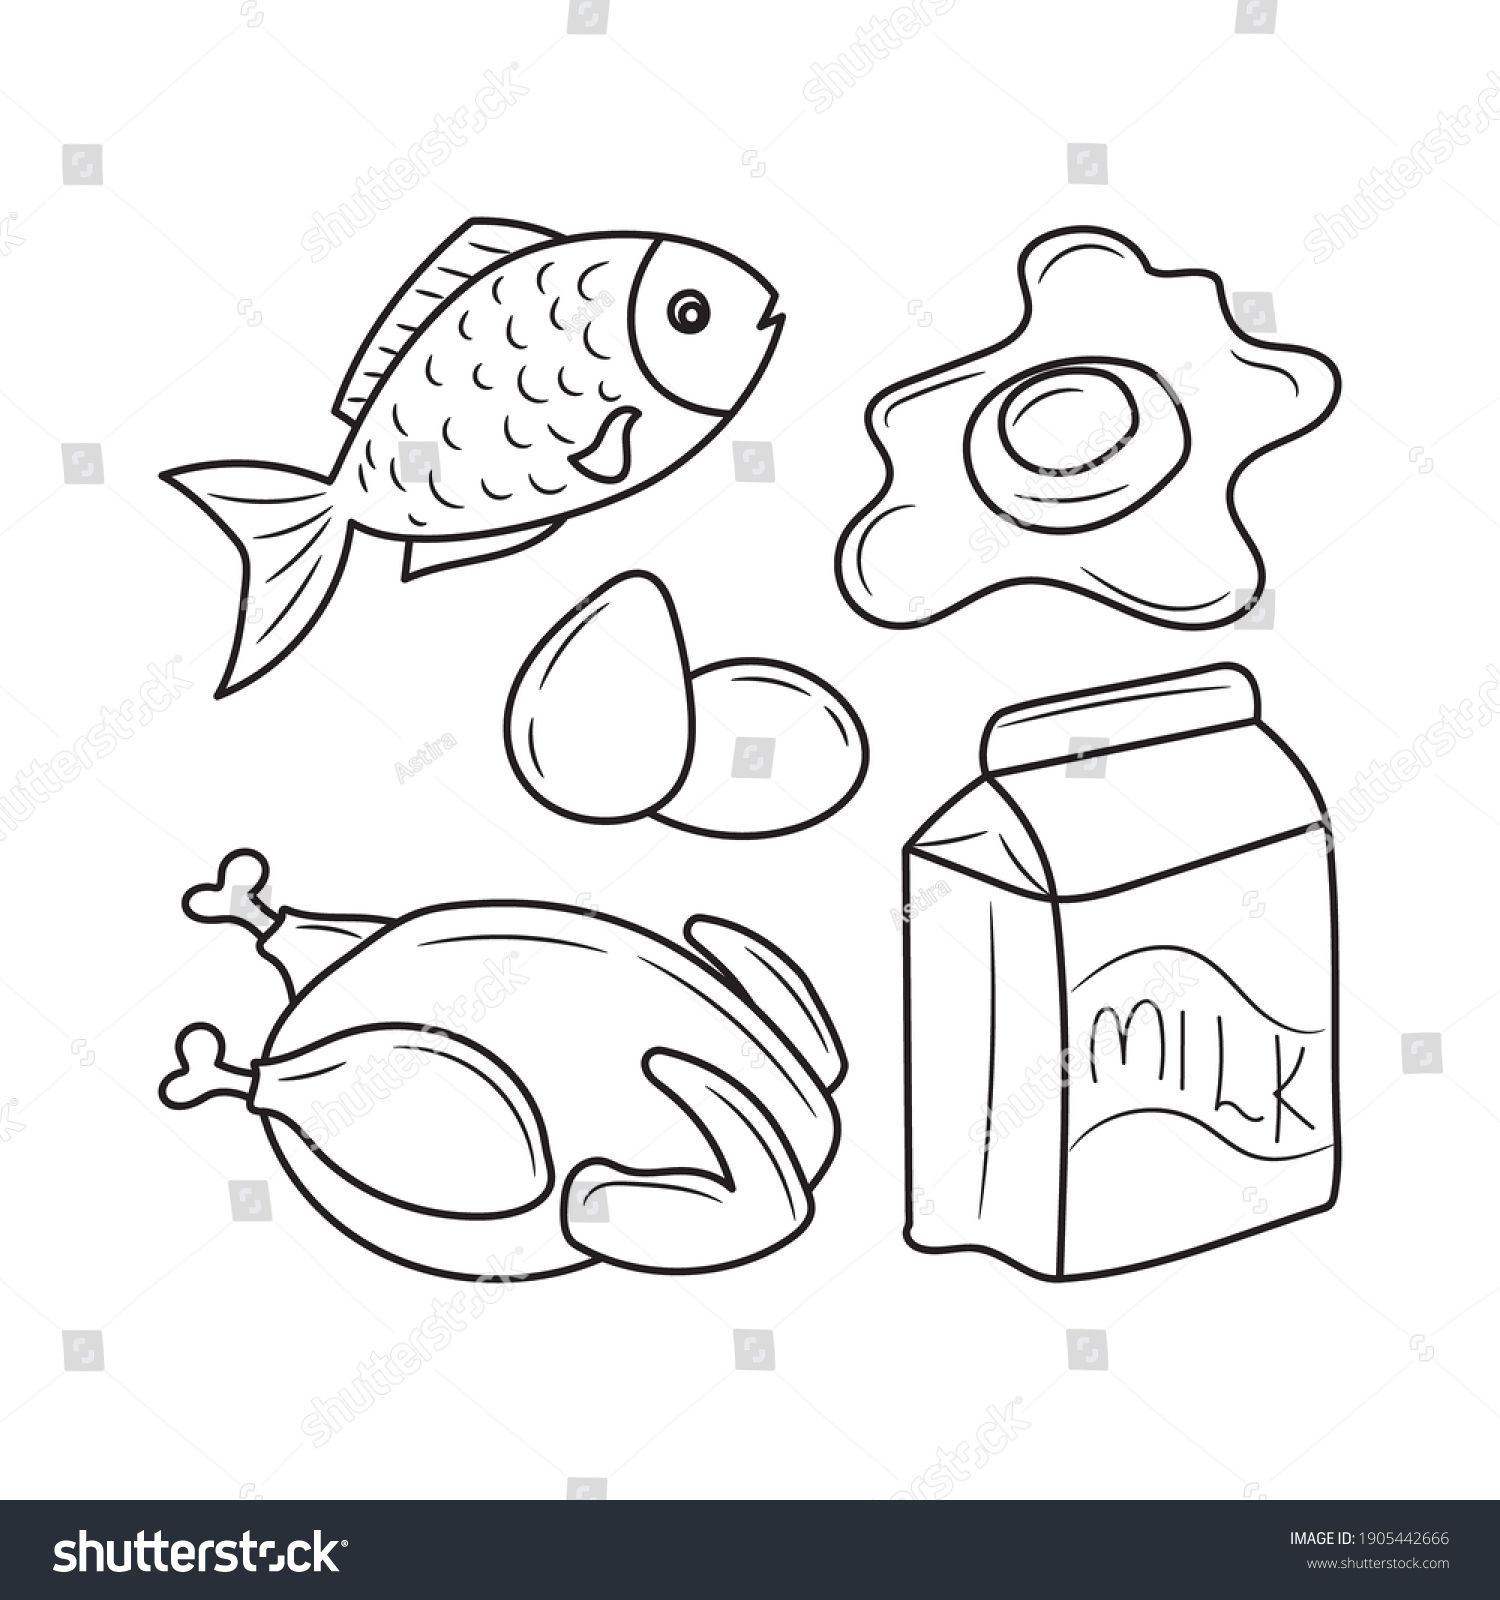 Protein Food Simple Black And White Line Art Vector Illustration In 2021 Line Art Vector Black And White Lines Black And White